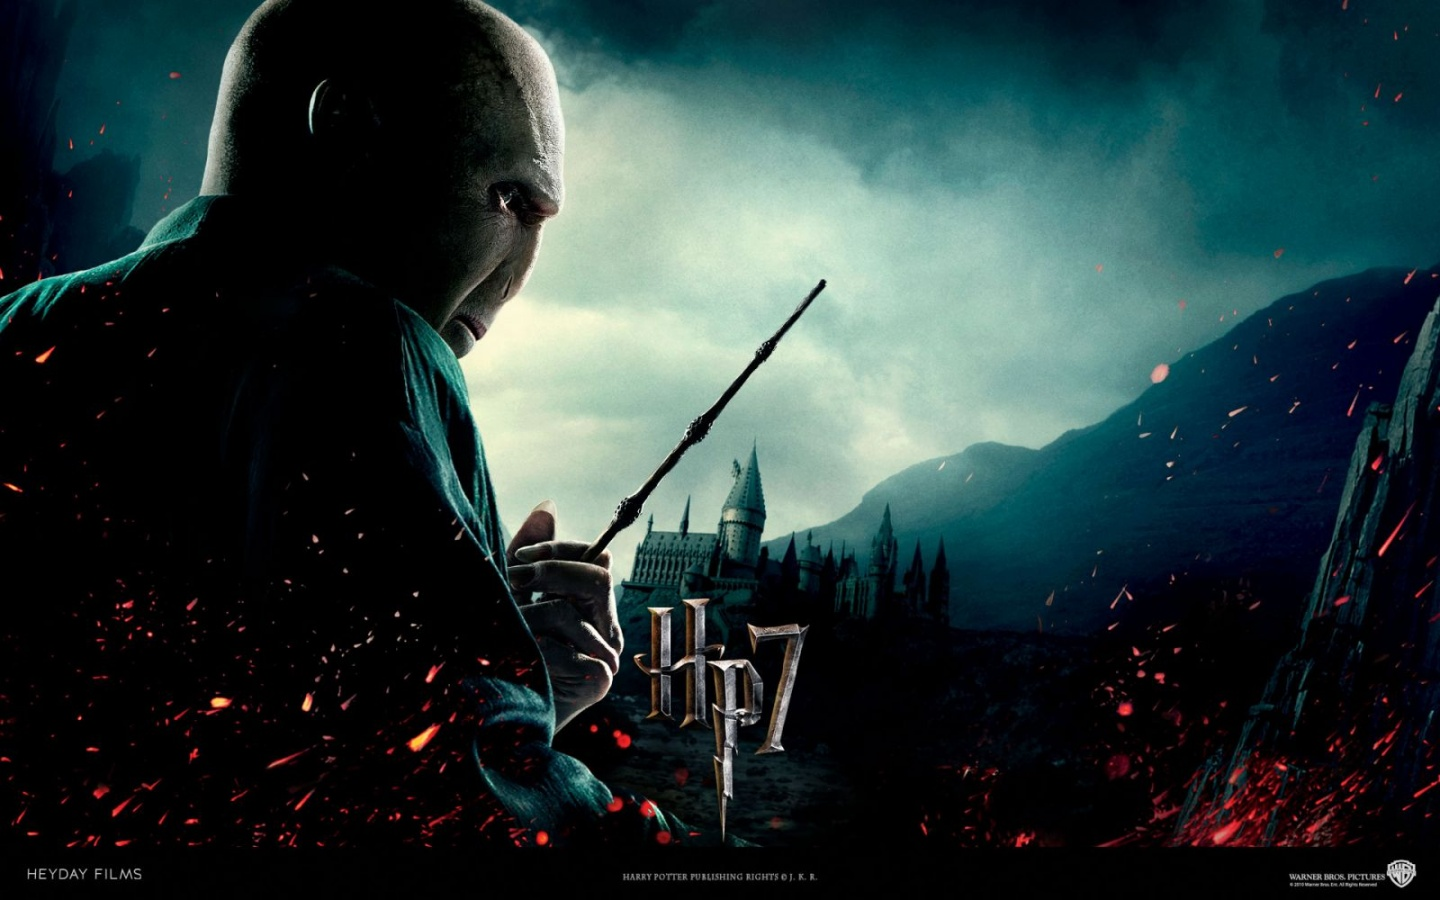 Beautiful Wallpaper Mac Harry Potter - harry-potter-and-the-deathly-hallows%3A-lord-voldemort_wallpapers_29493_1440x900  Best Photo Reference_164761.jpg